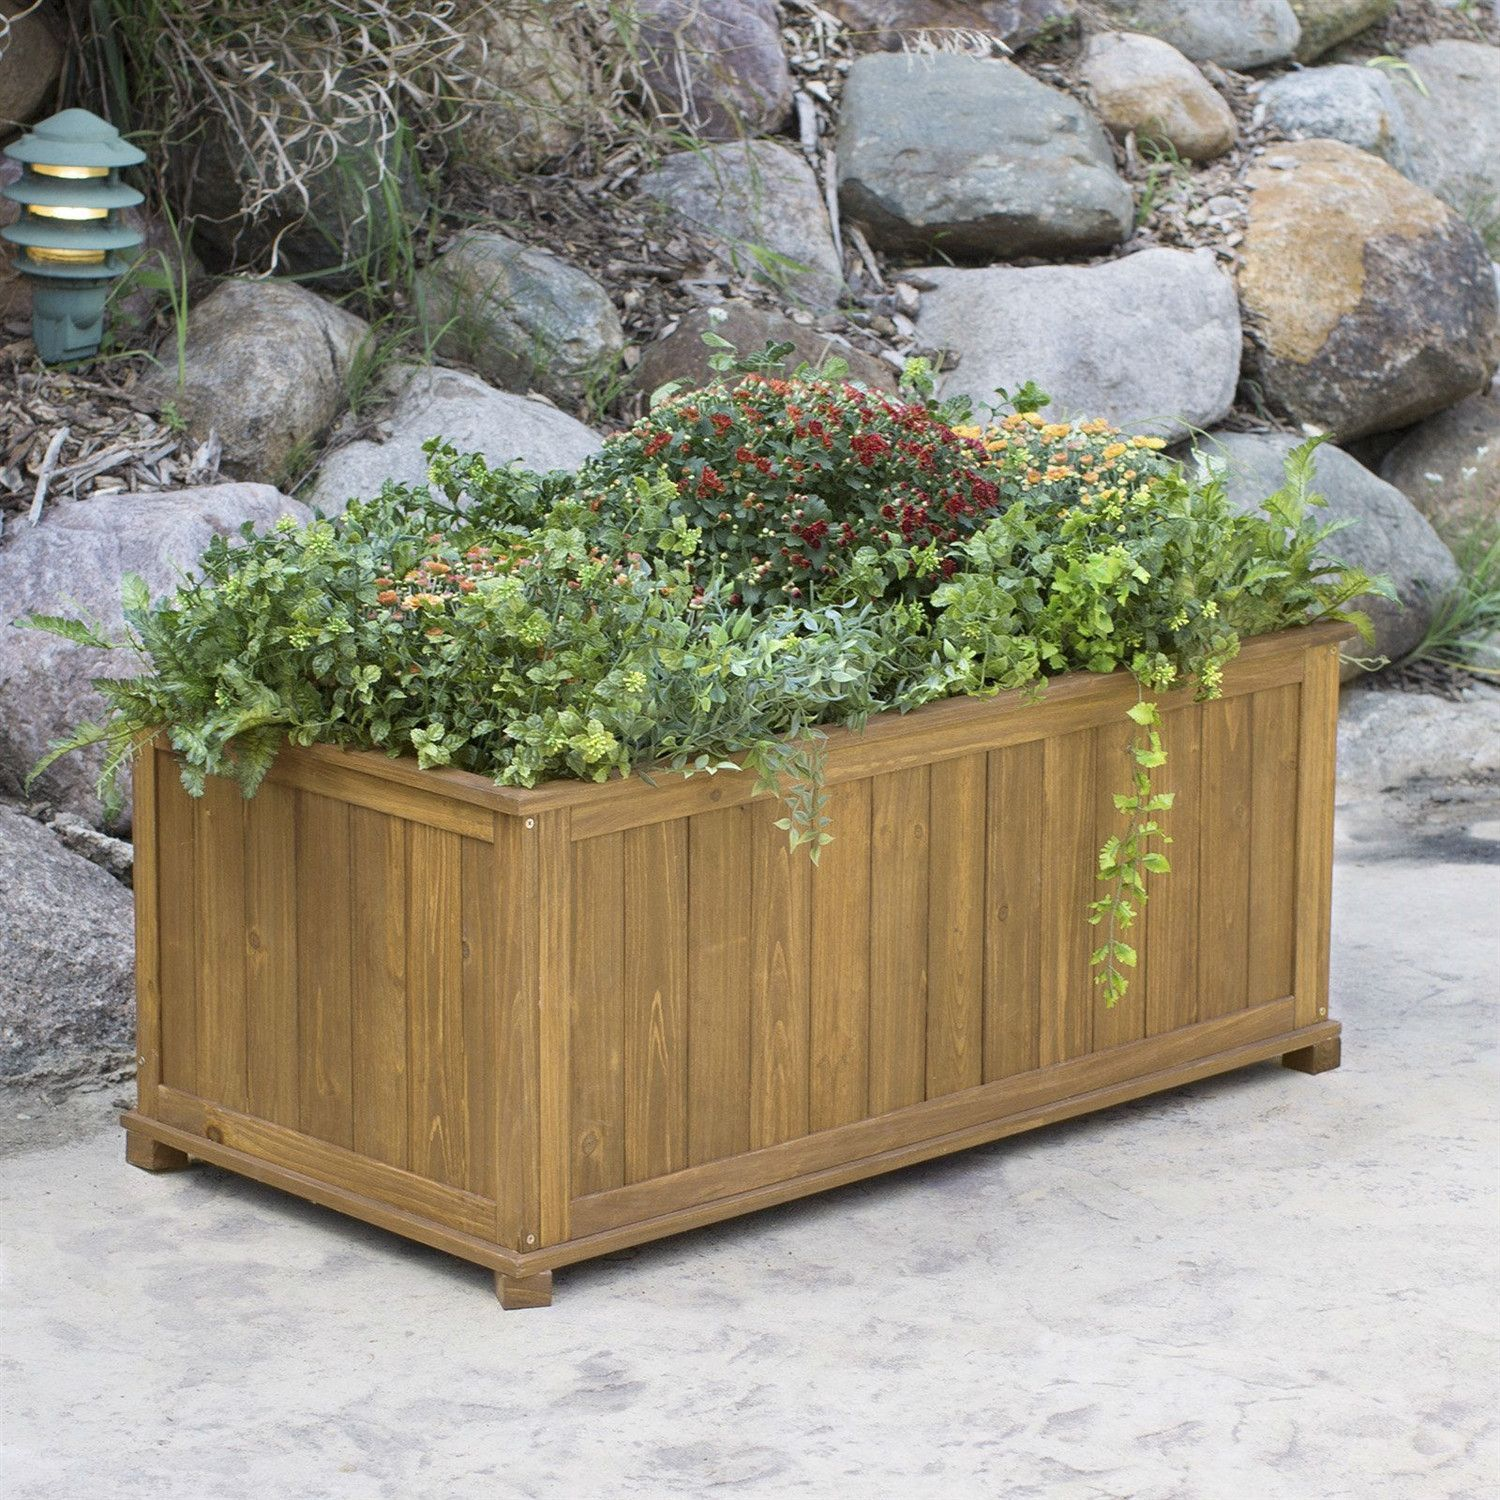 Outdoor 41 in Durable Raised Patio Planter Box in Oak Wood Finish